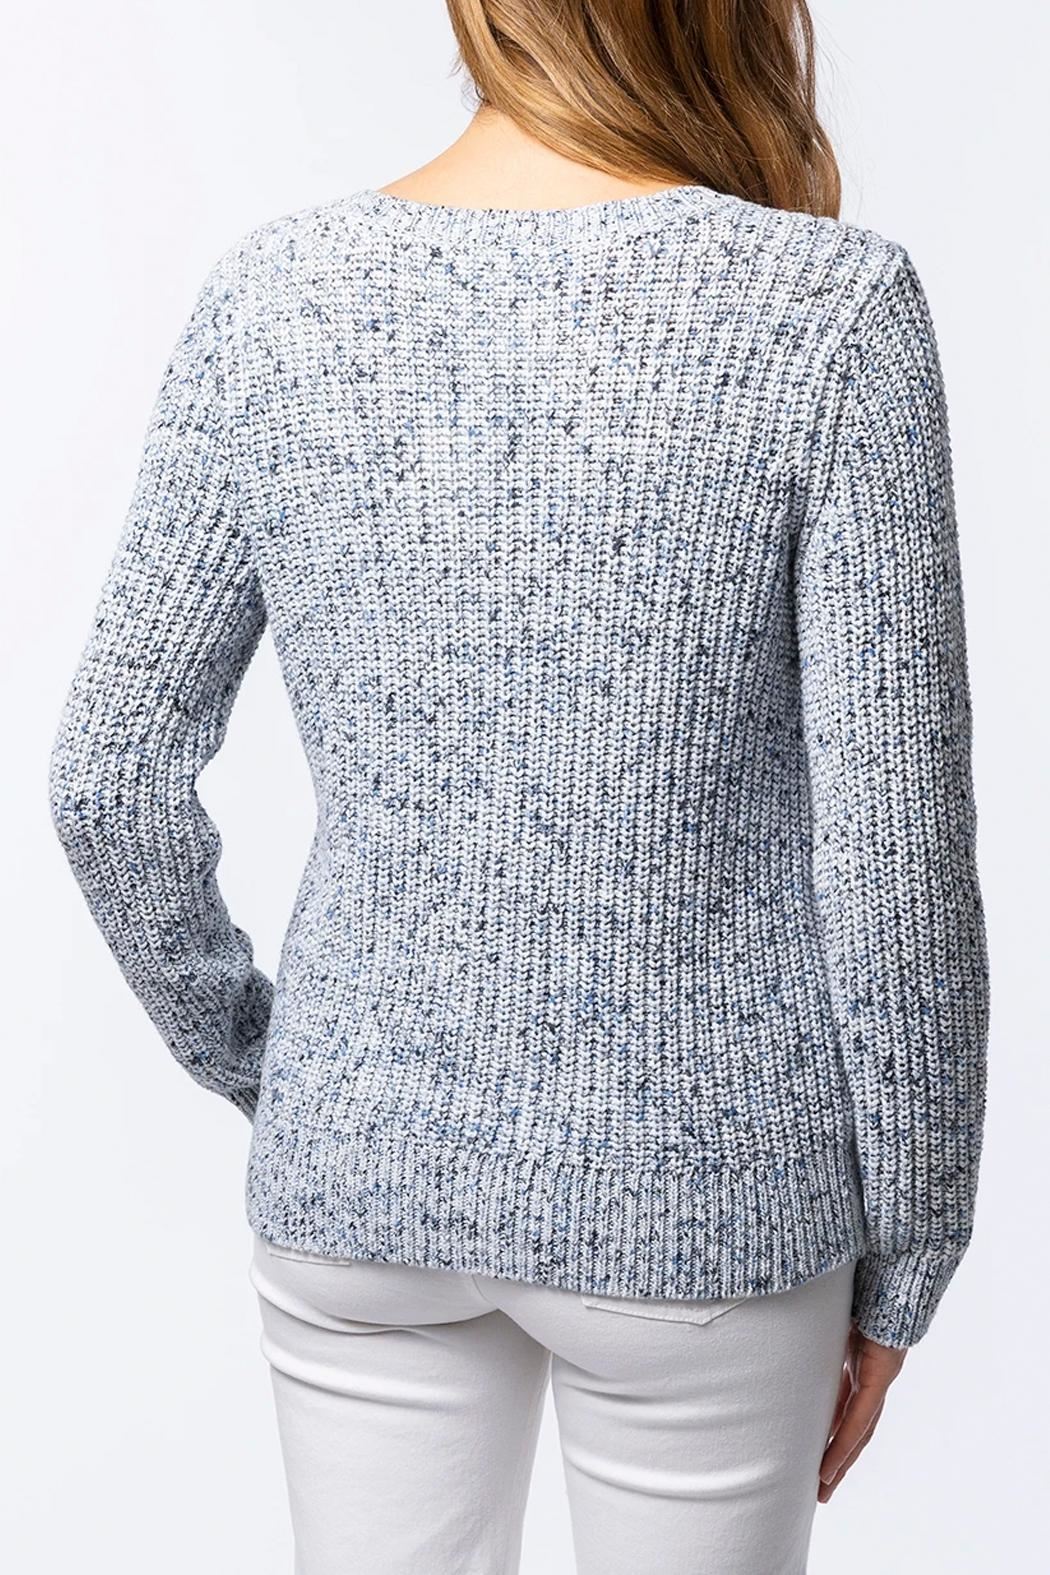 Tyler Boe Space Dyed Sweater - Front Full Image